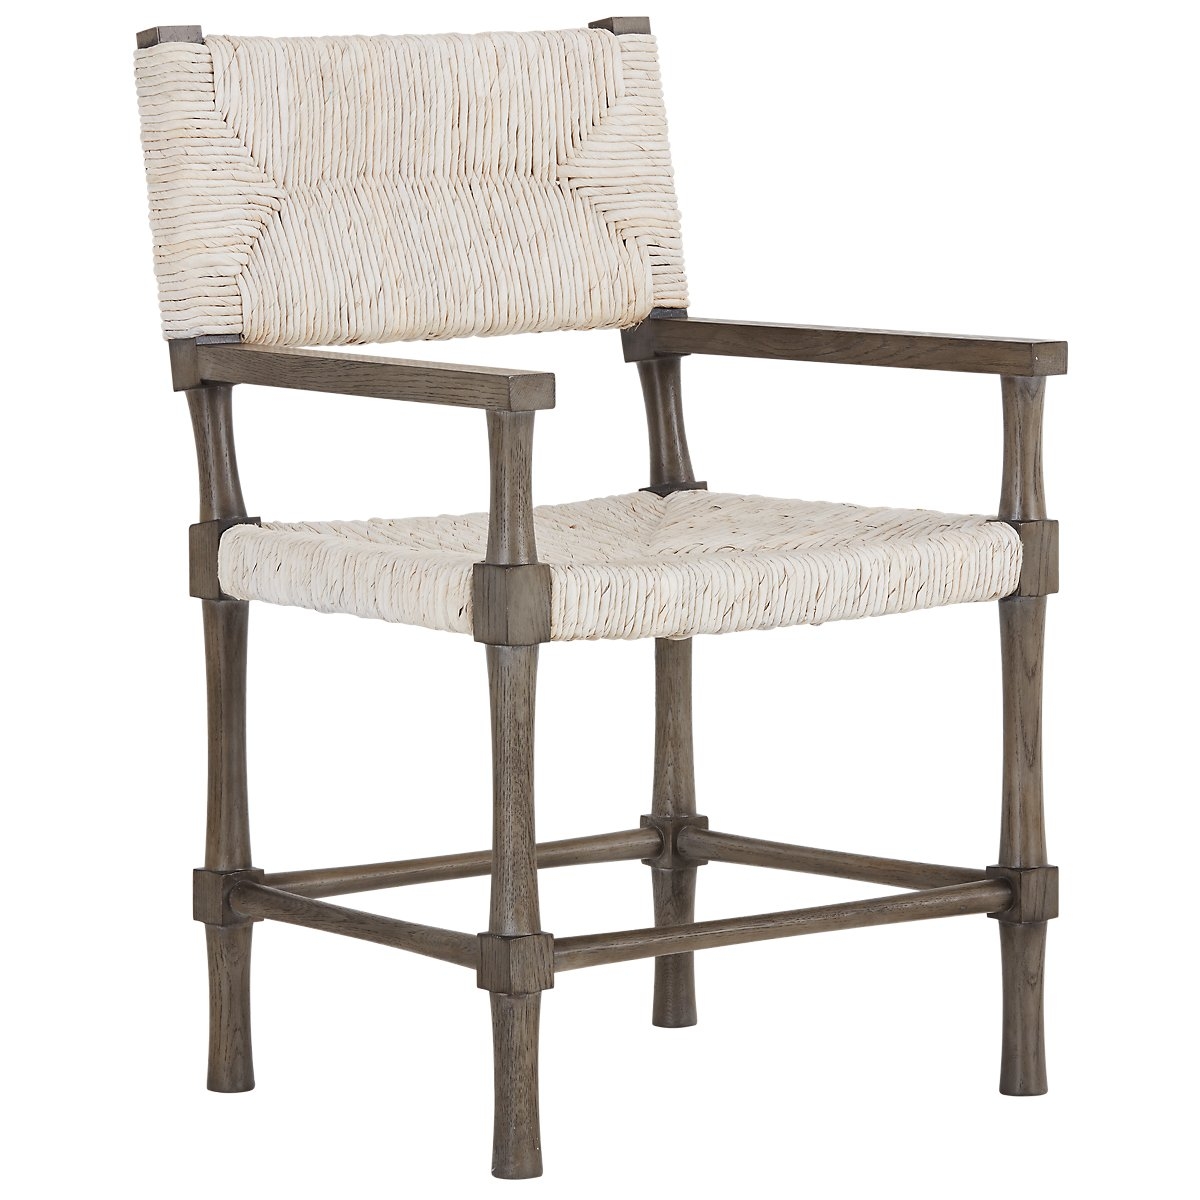 City furniture palma light tone woven arm chair for Furniture palma